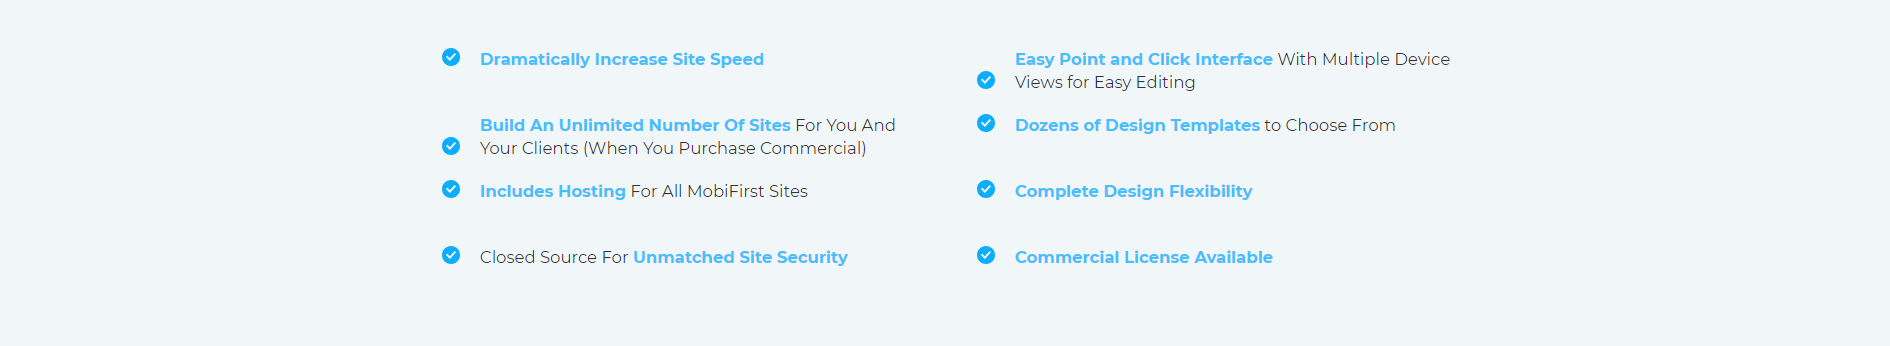 MobiFirst Features